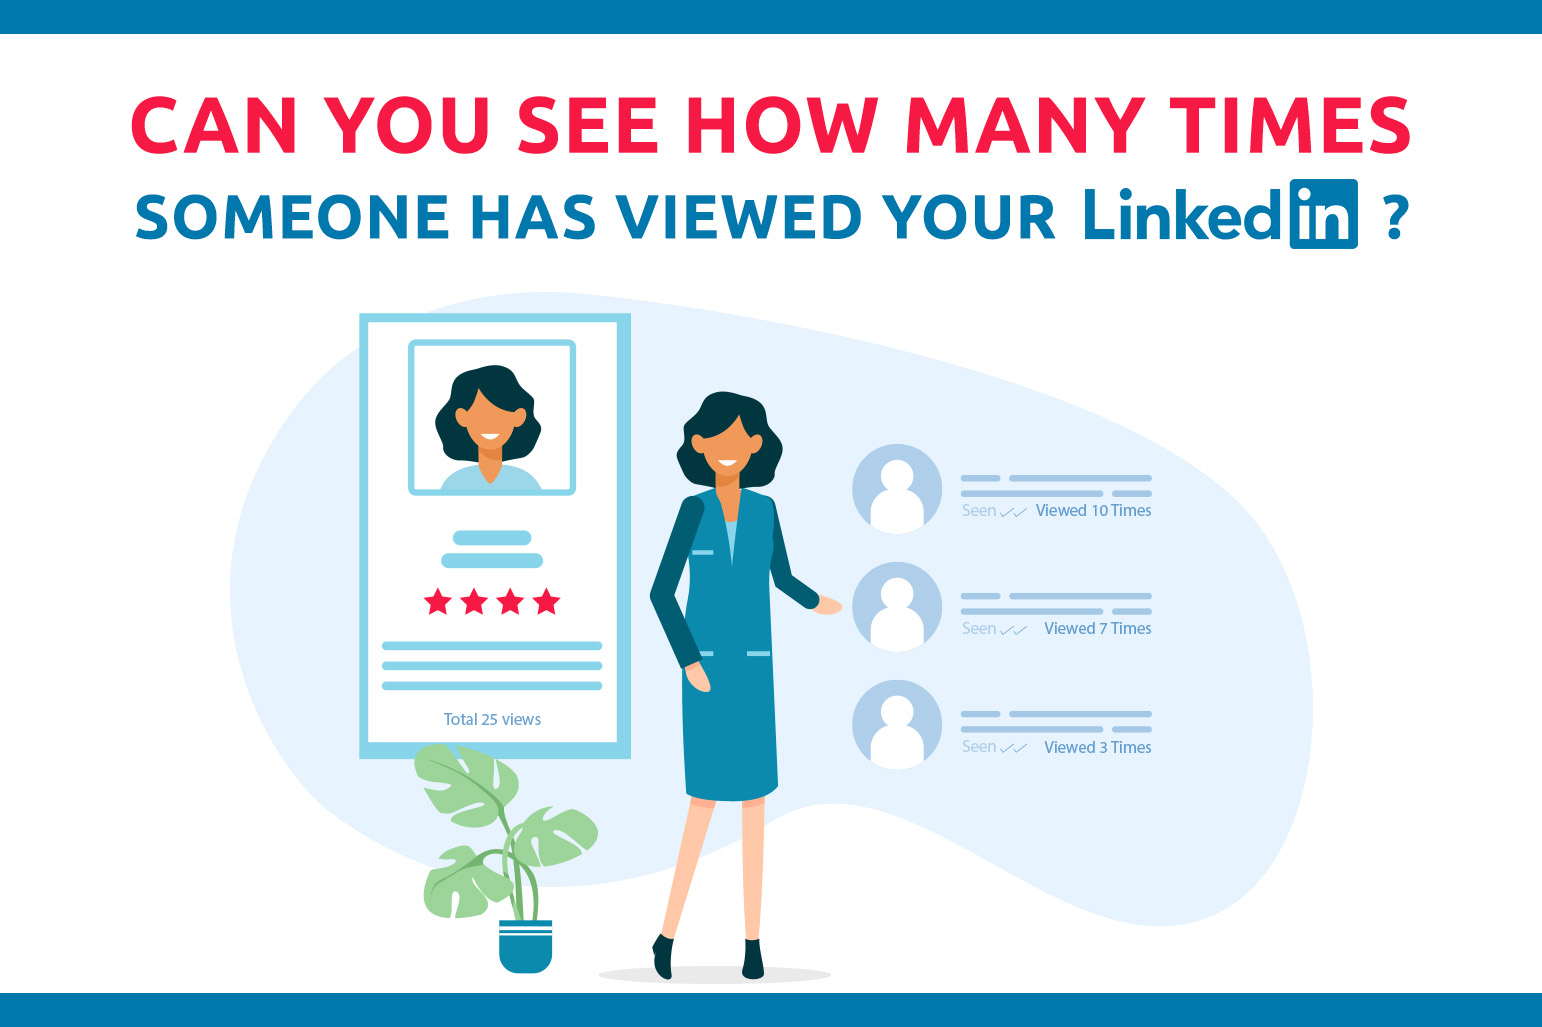 Can You See How Many Times Someone Has Viewed Your LinkedIn Profile?